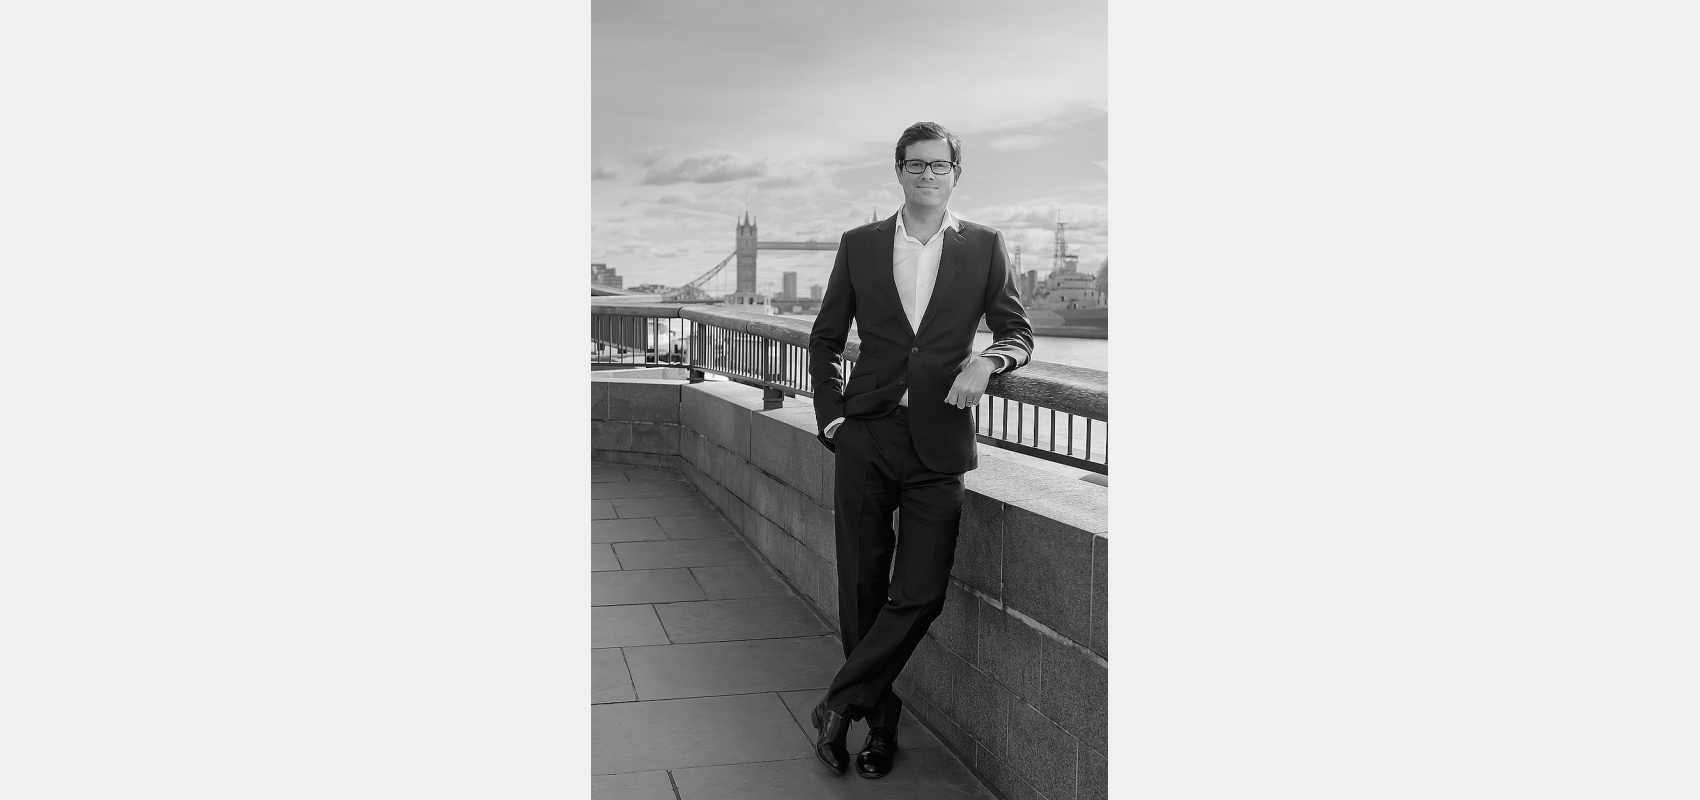 Business portrait. Thames Embankment/Company Partner/ suit/Tower Bridge/ in background.